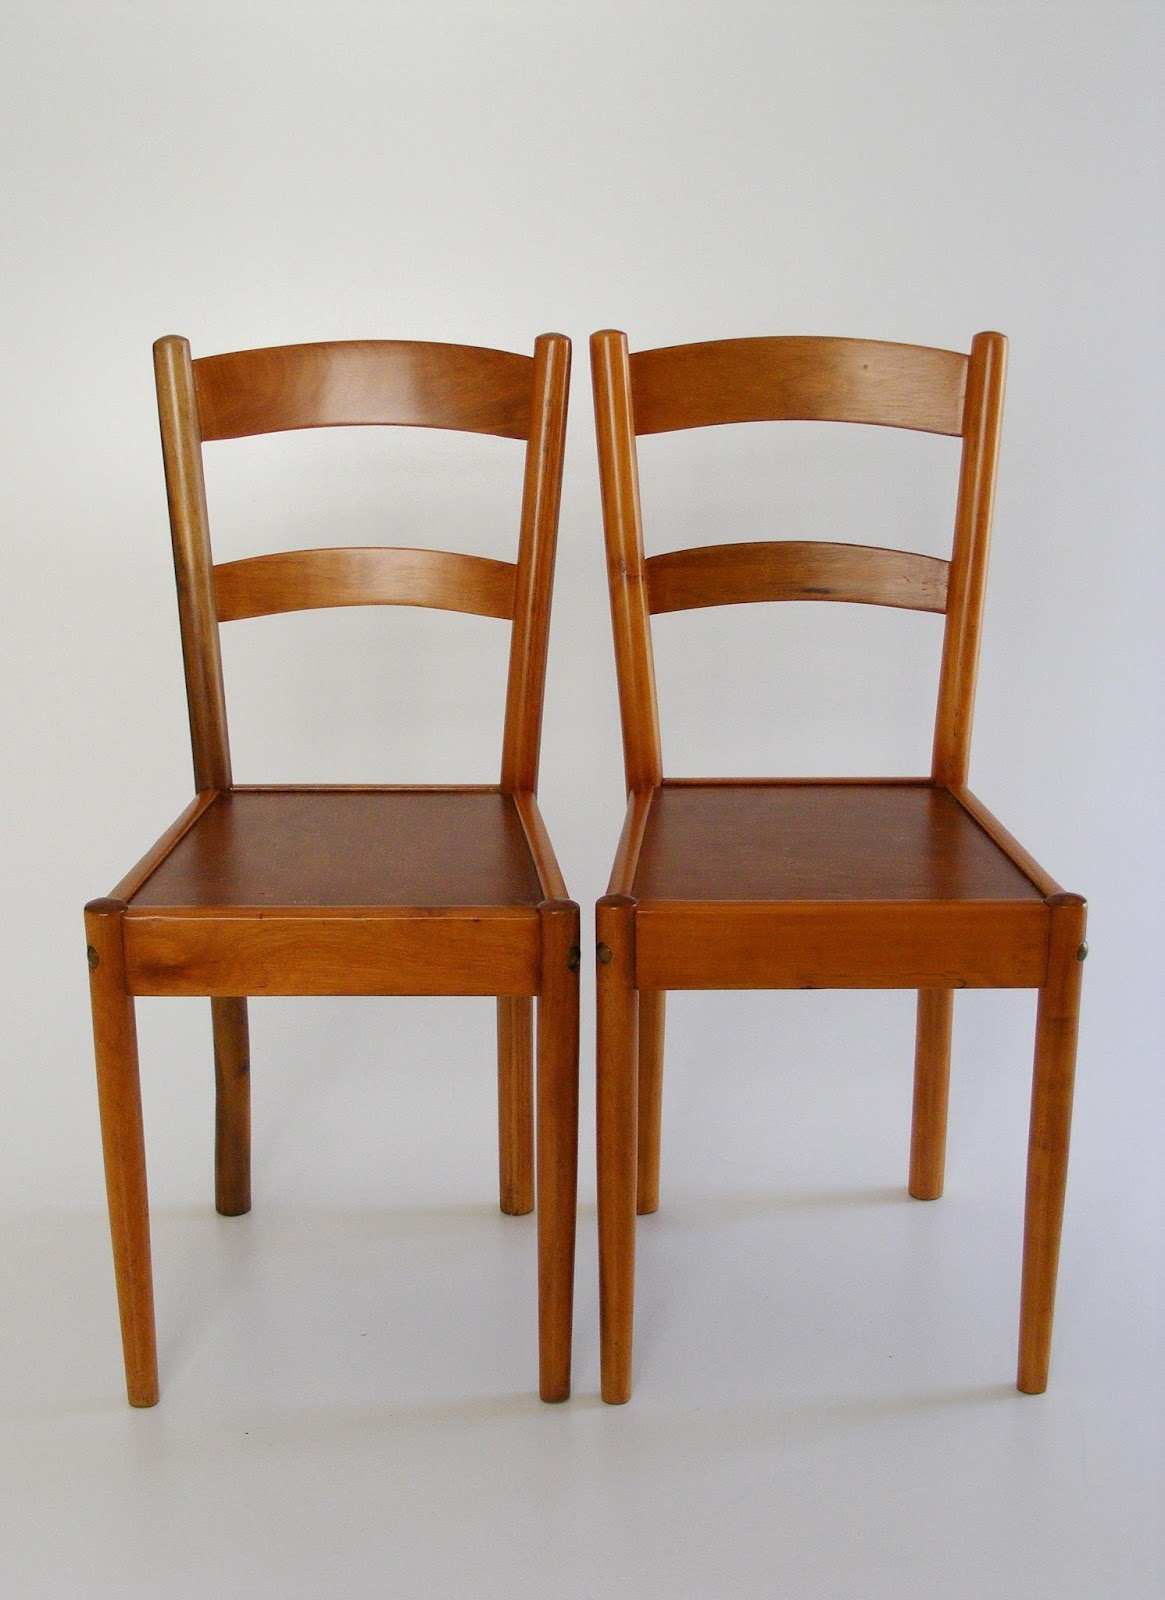 A pair of globe chairs. The Globe Chair was designed and patented in 1921 and made in Durban South Africa until the early 1940u0027s & VAMP FURNITURE: This weeku0027s new vintage furniture stock_15 January 2015